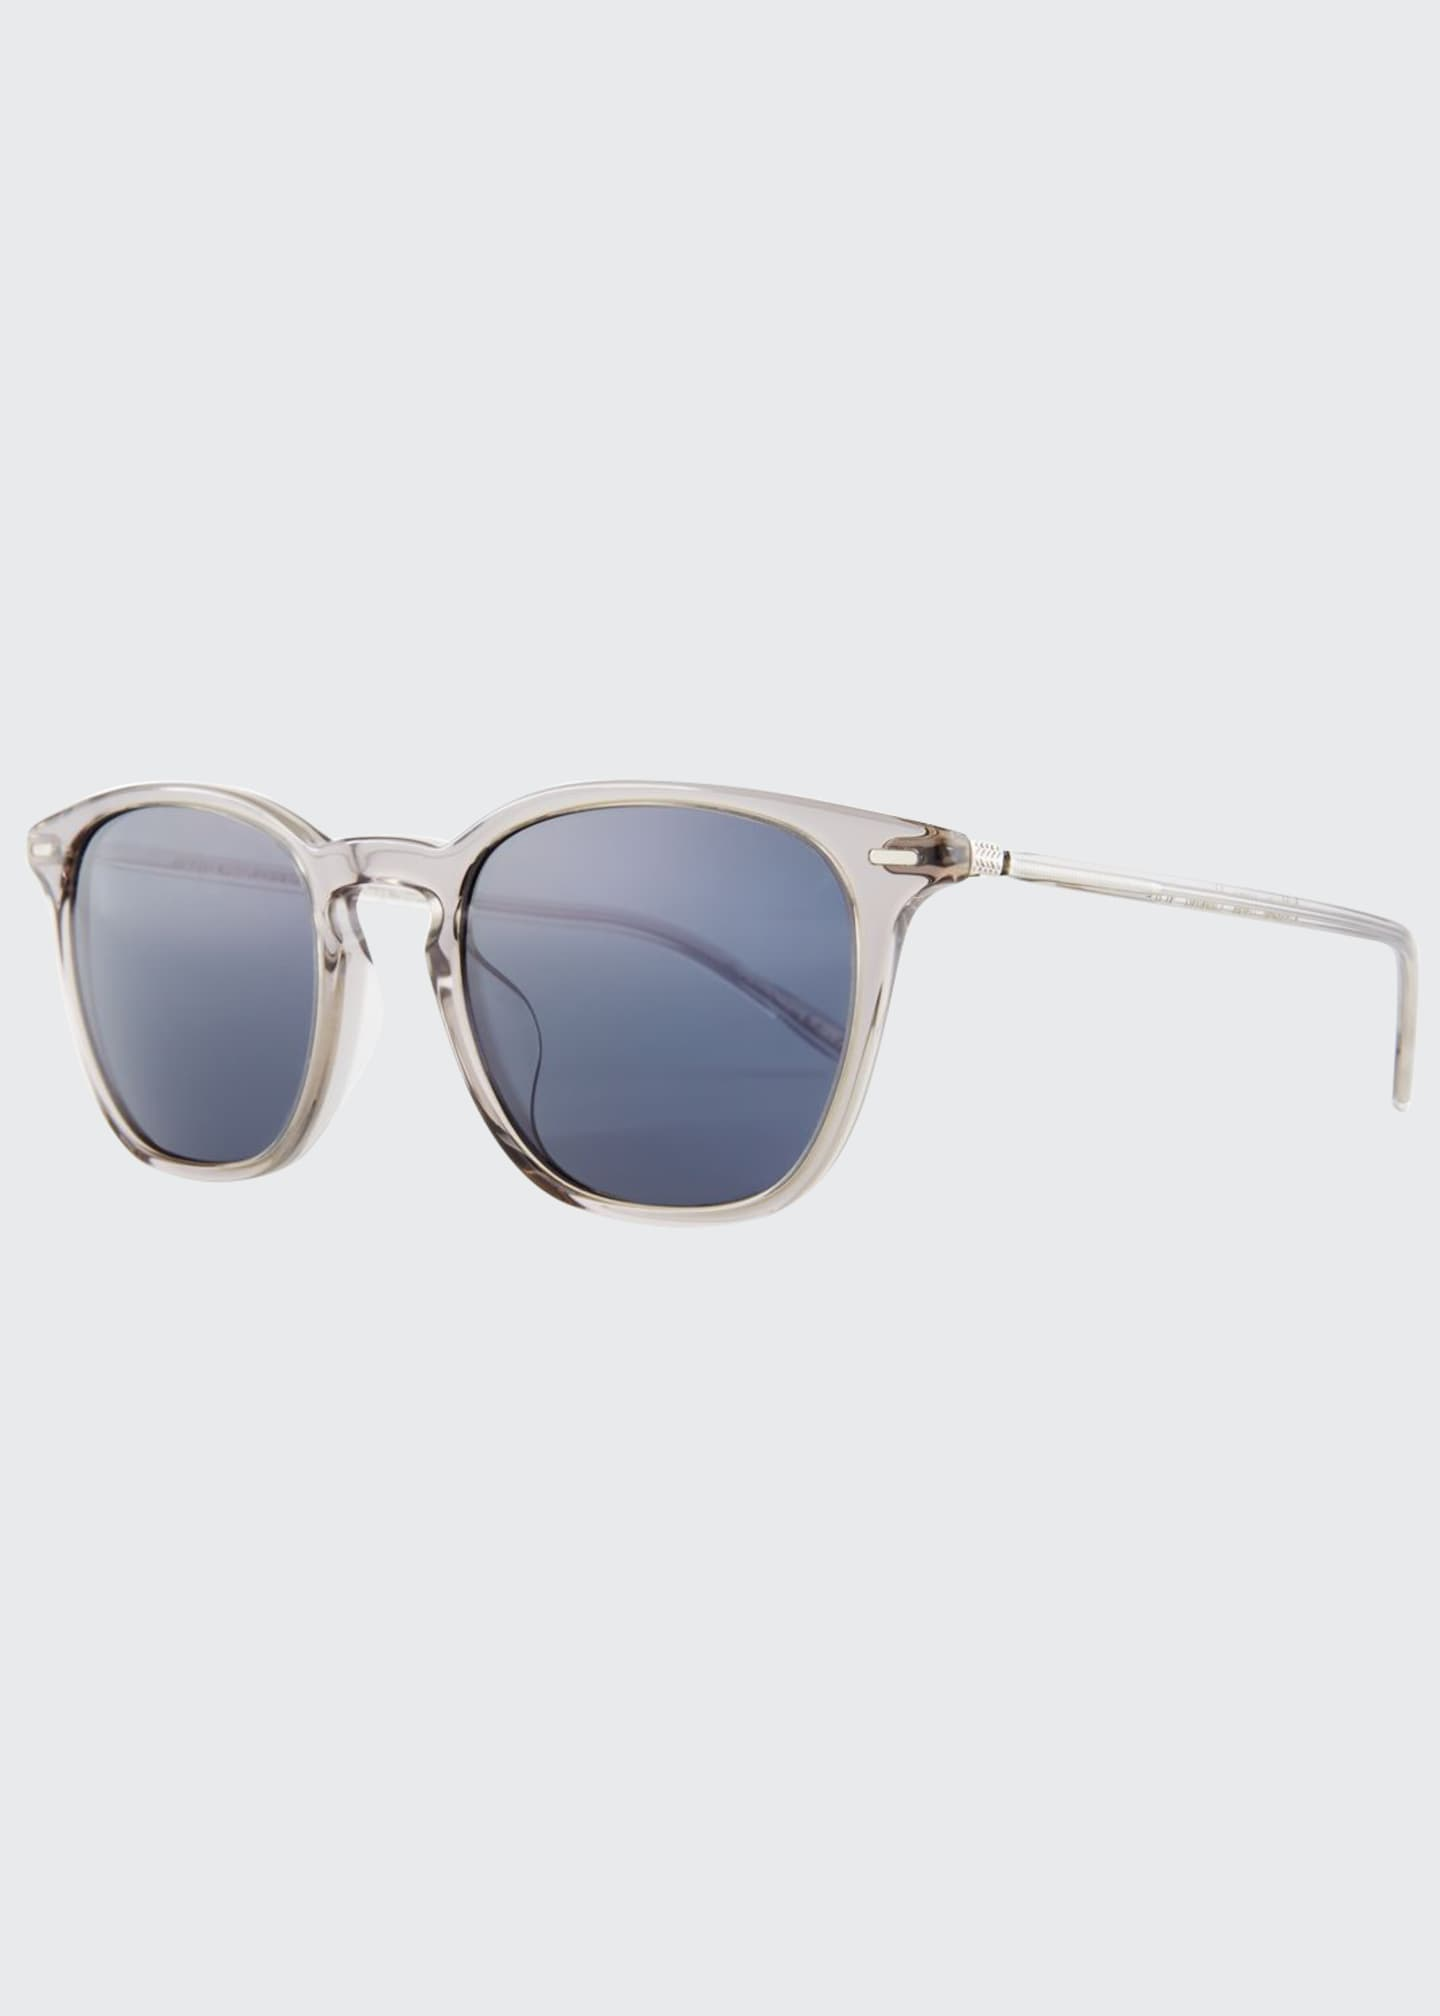 Oliver Peoples Heaton Square Acetate Sunglasses, Gray/Blue